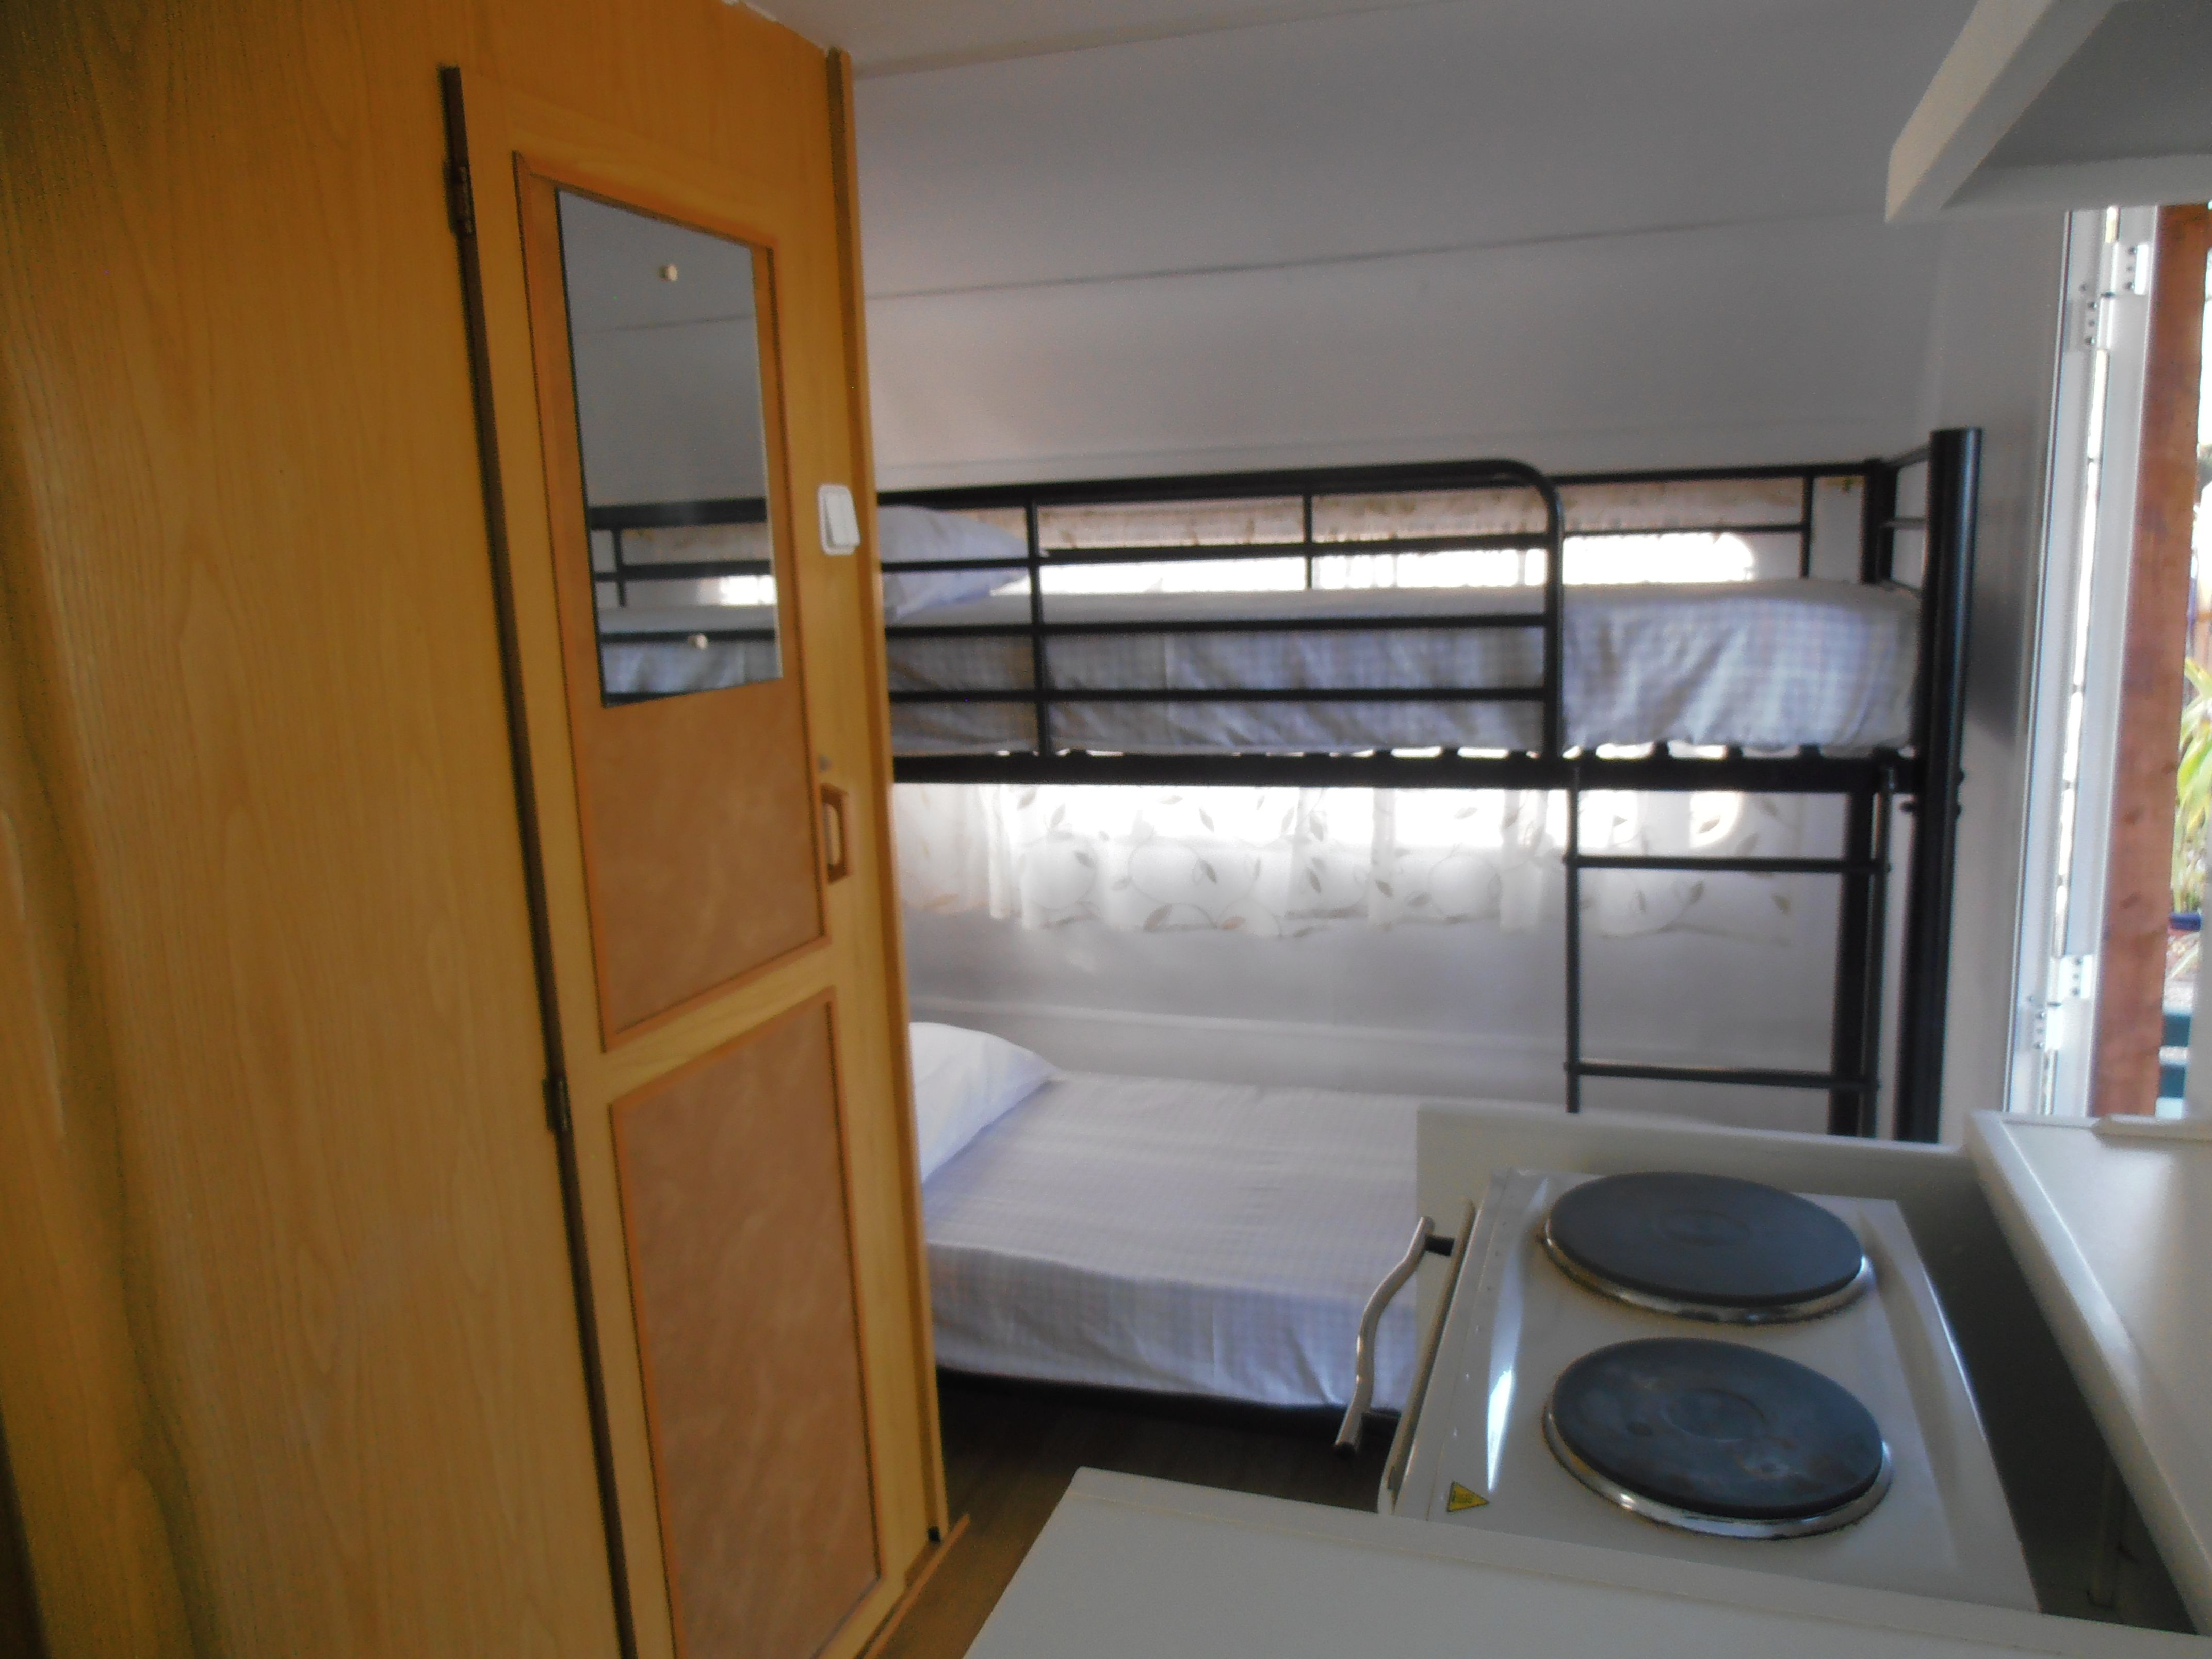 Recently refurbished berth caravan pet friendly campsite in spain also best renovations images on pinterest campers camp rh za